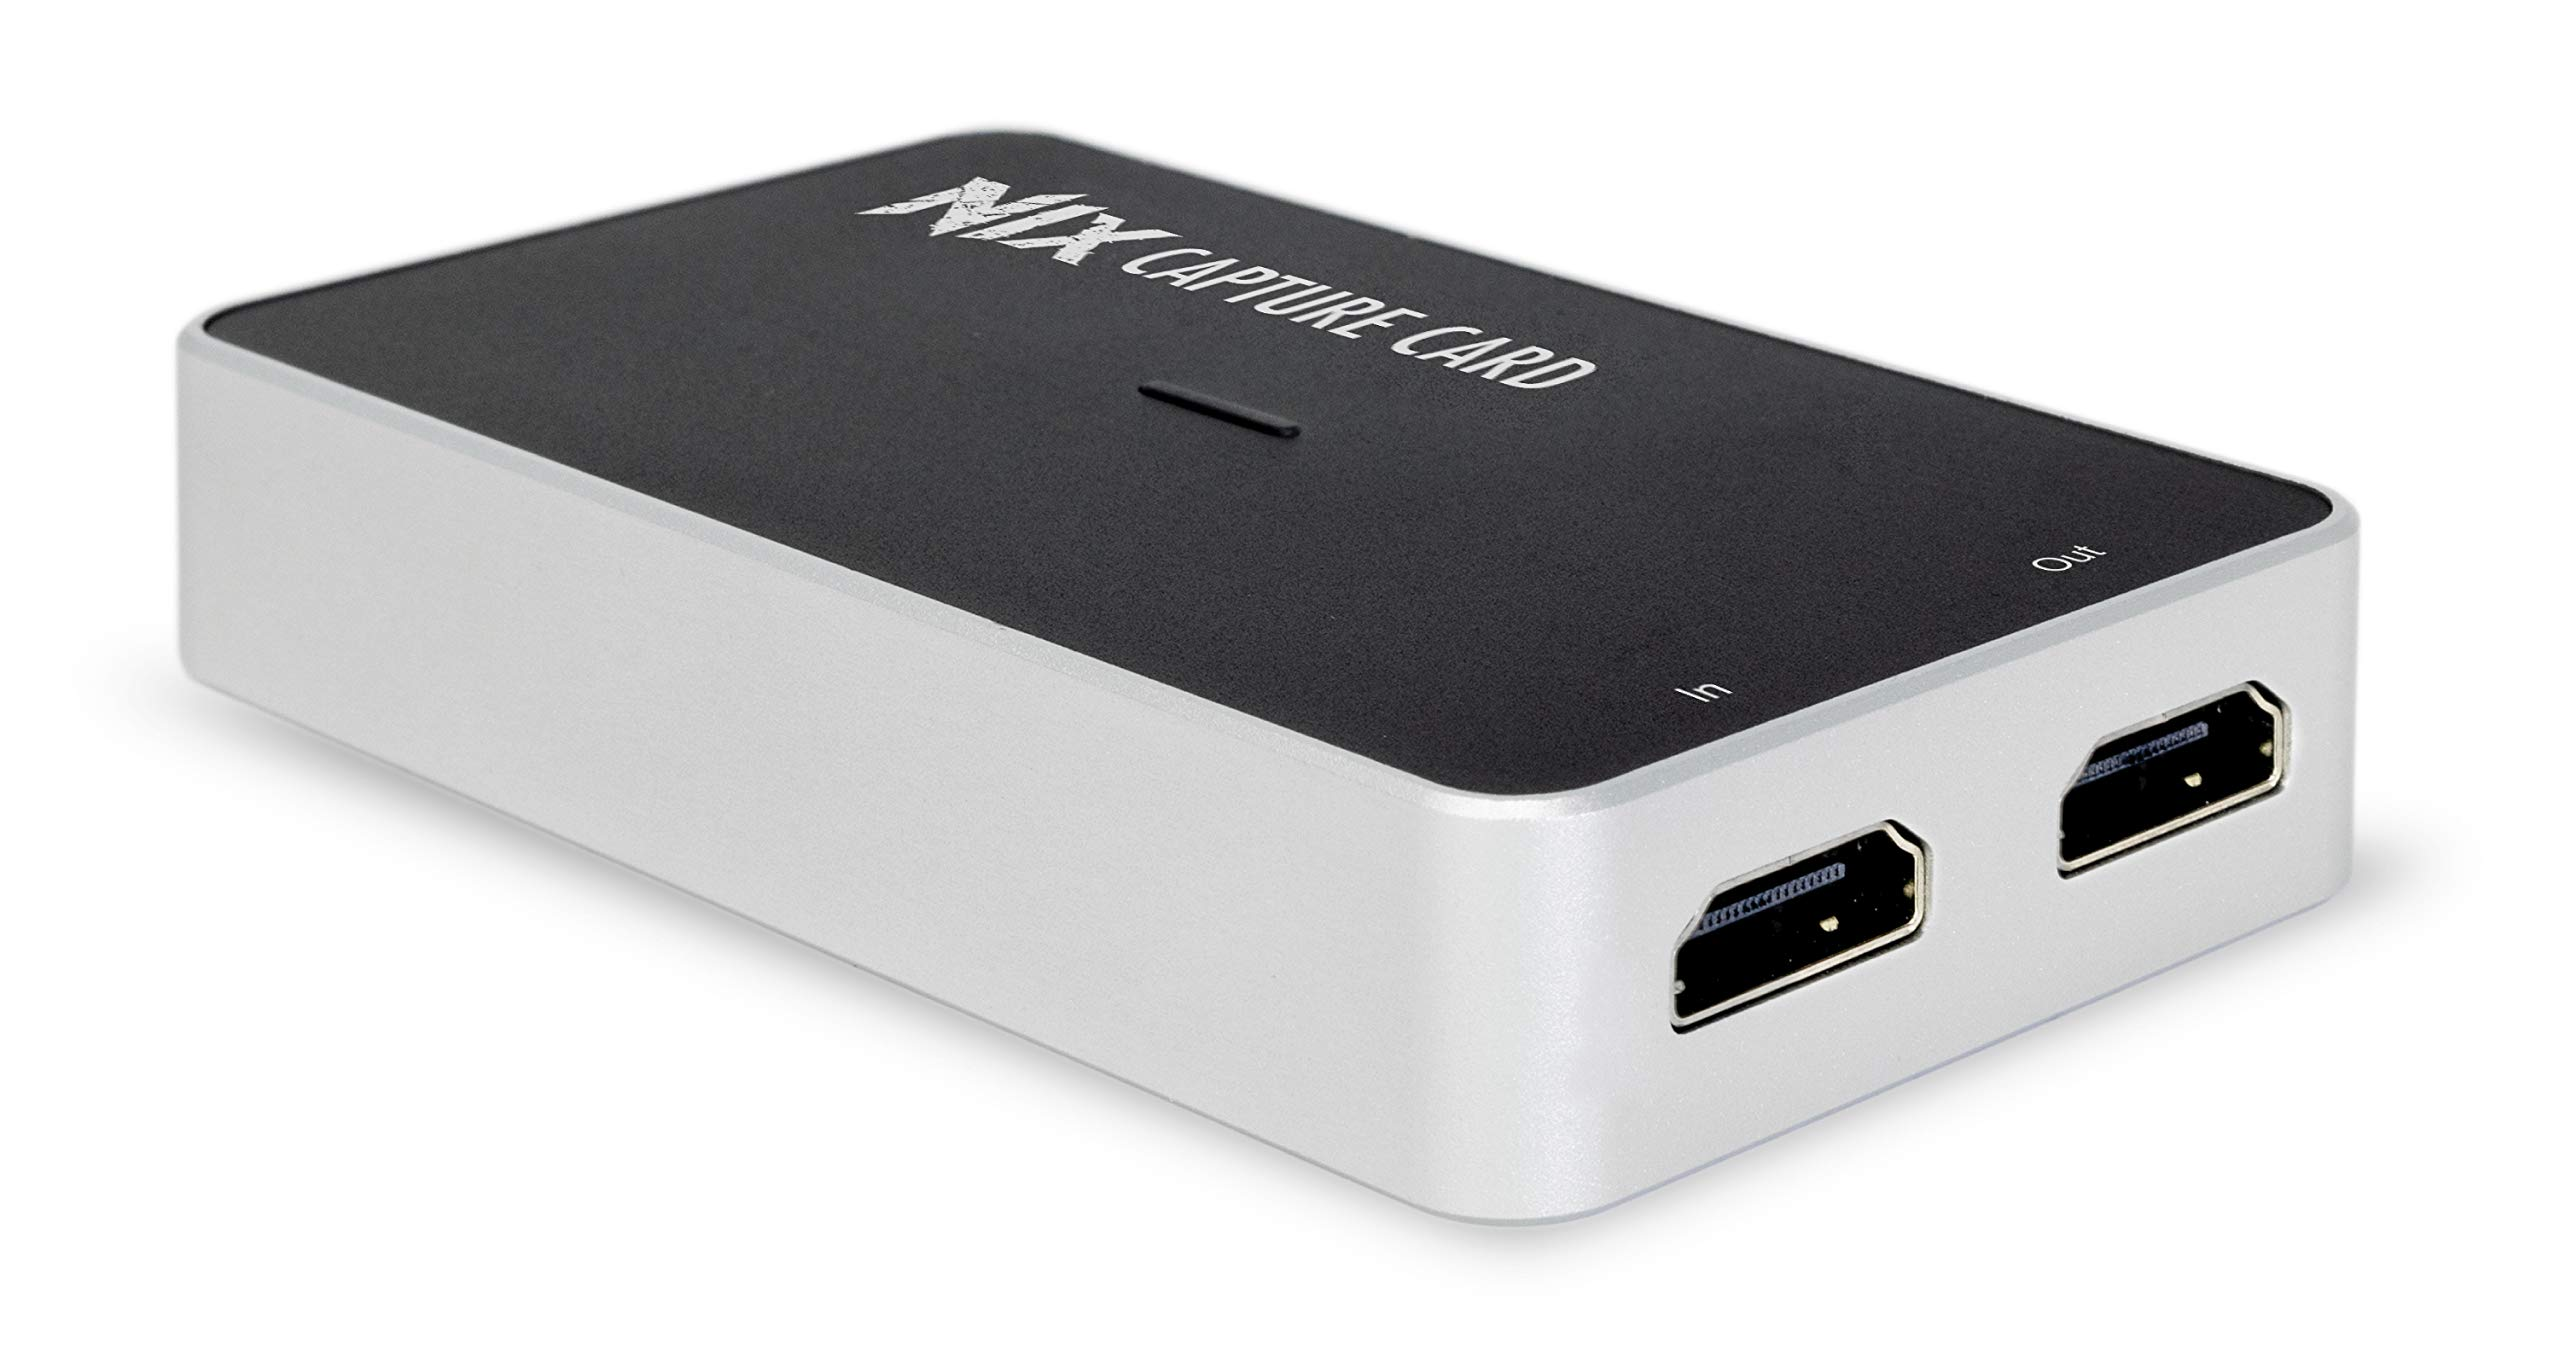 Plugable Performance NIX Video Game Capture Card 1080P 60FPS, USB C & USB 3.0 and HDMI Passthrough for Monitor - Compatible with Windows, Linux, macOS, OBS Streaming by Plugable